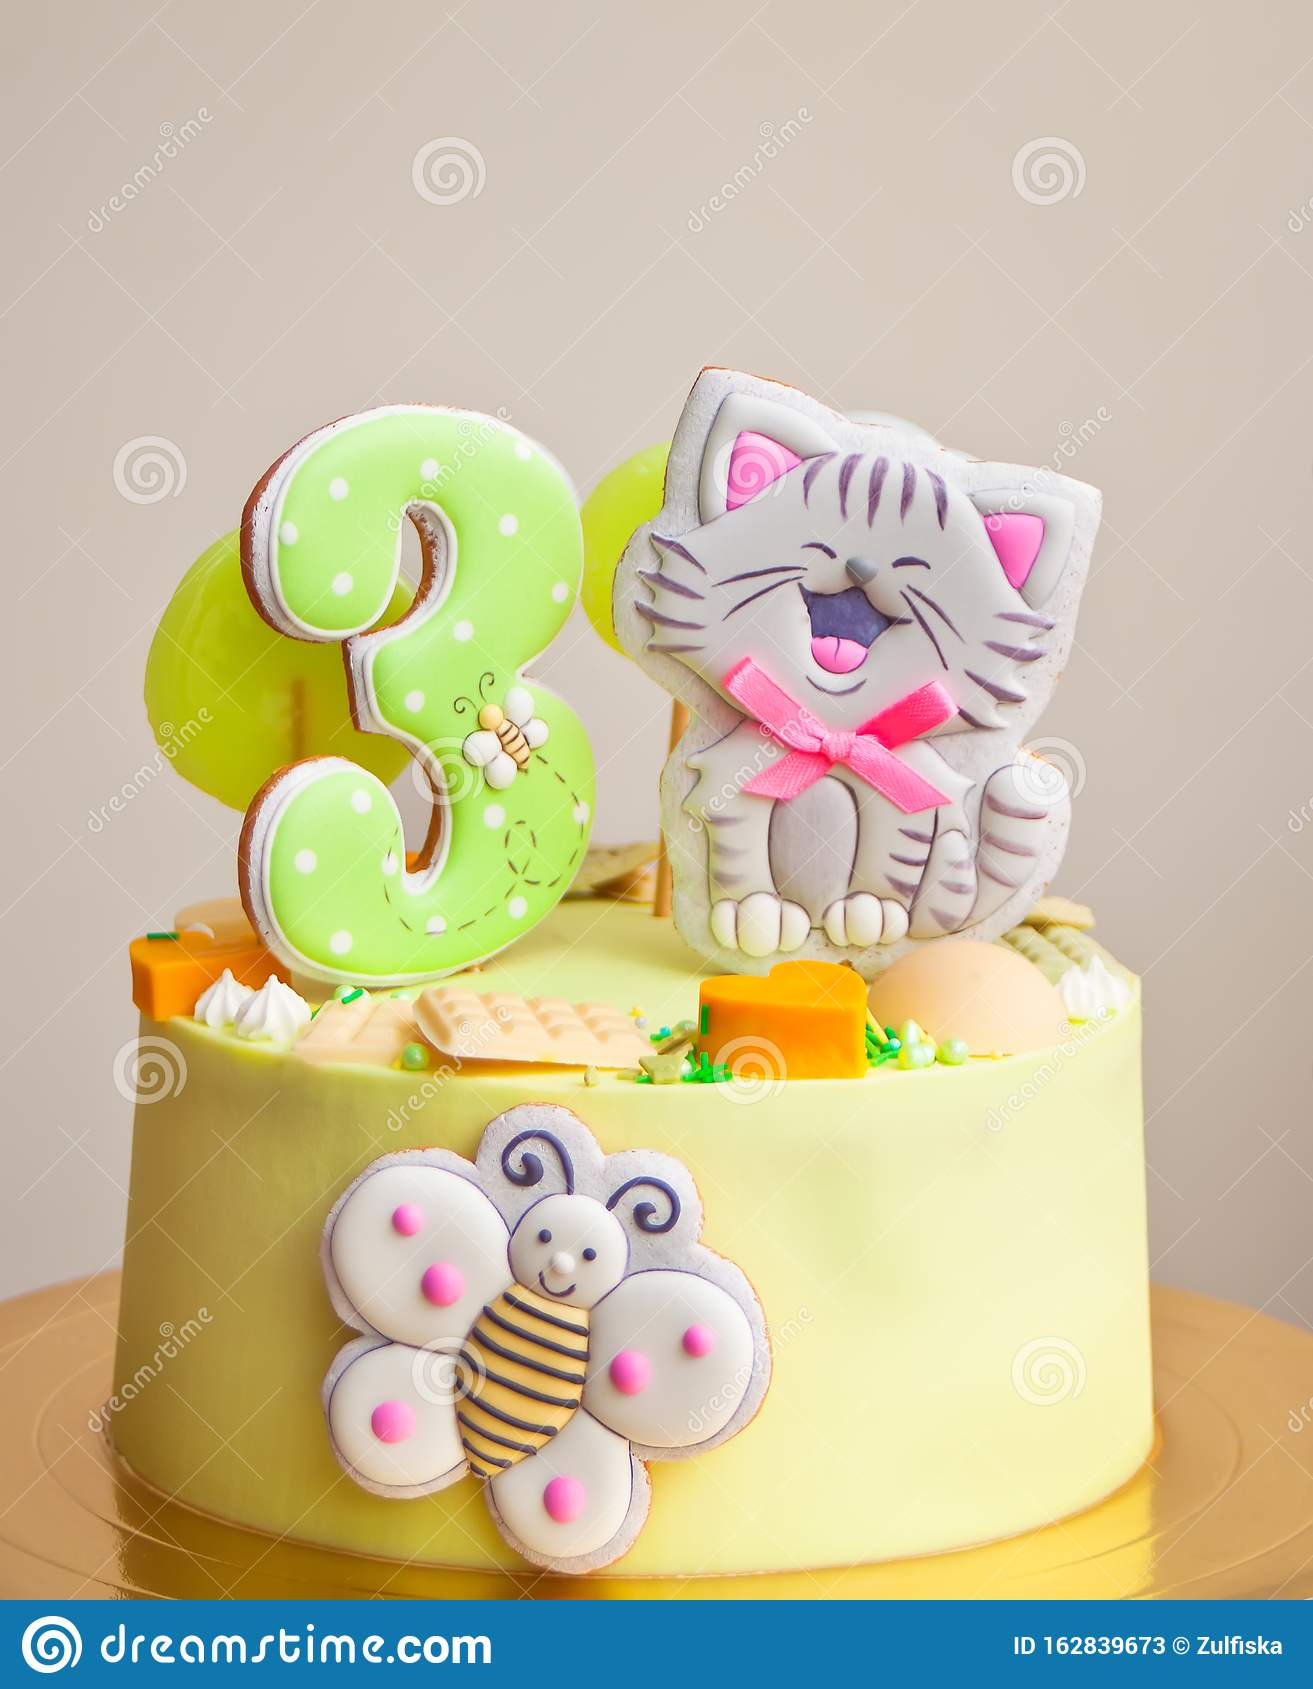 Awe Inspiring Birthday Cake For Little Girl Decorated Funny Cookies With Cat And Personalised Birthday Cards Bromeletsinfo